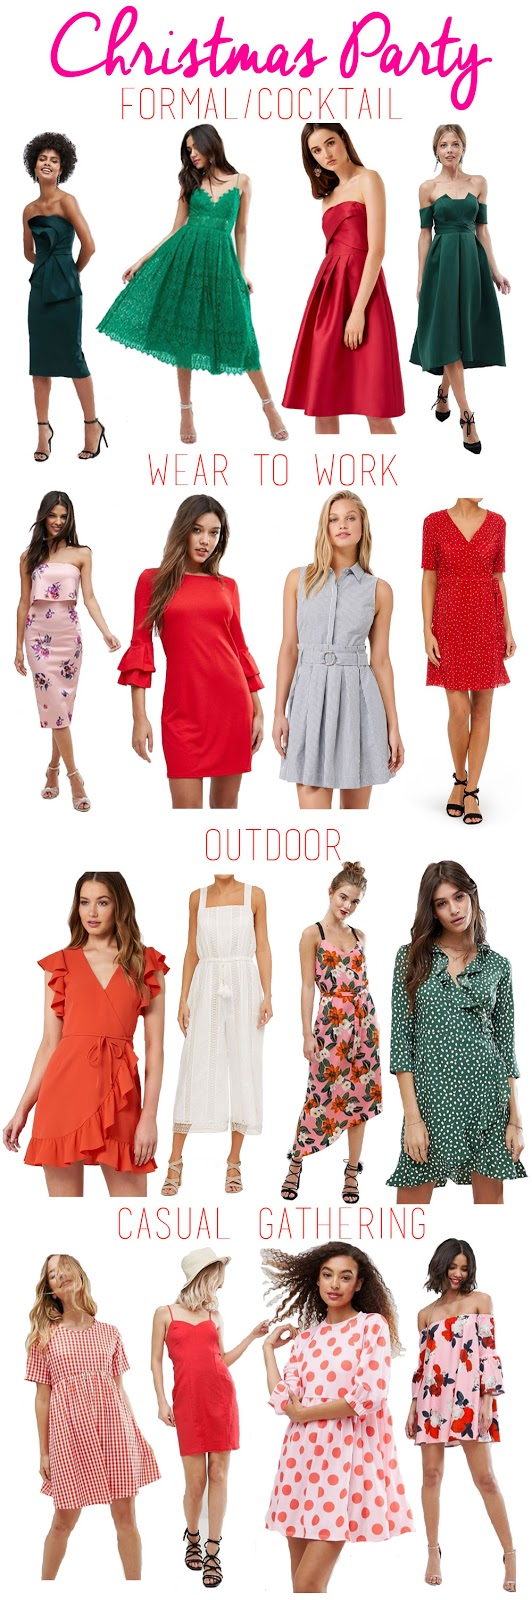 Christmas Party Outfit Ideas The Aussie Prep